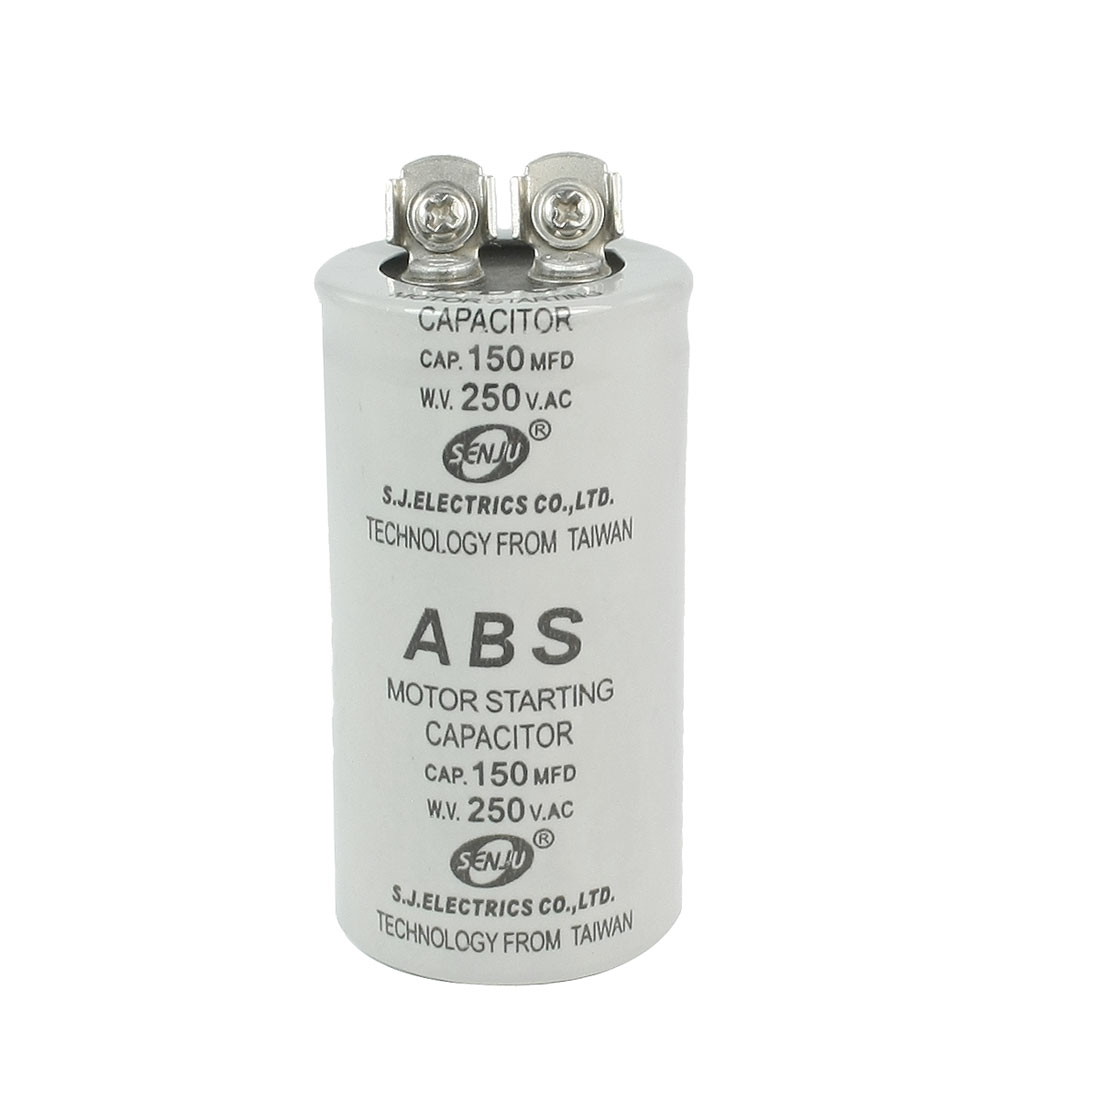 ABS Series Motor Cylinder Starting Capacitor 150UF 250V AC